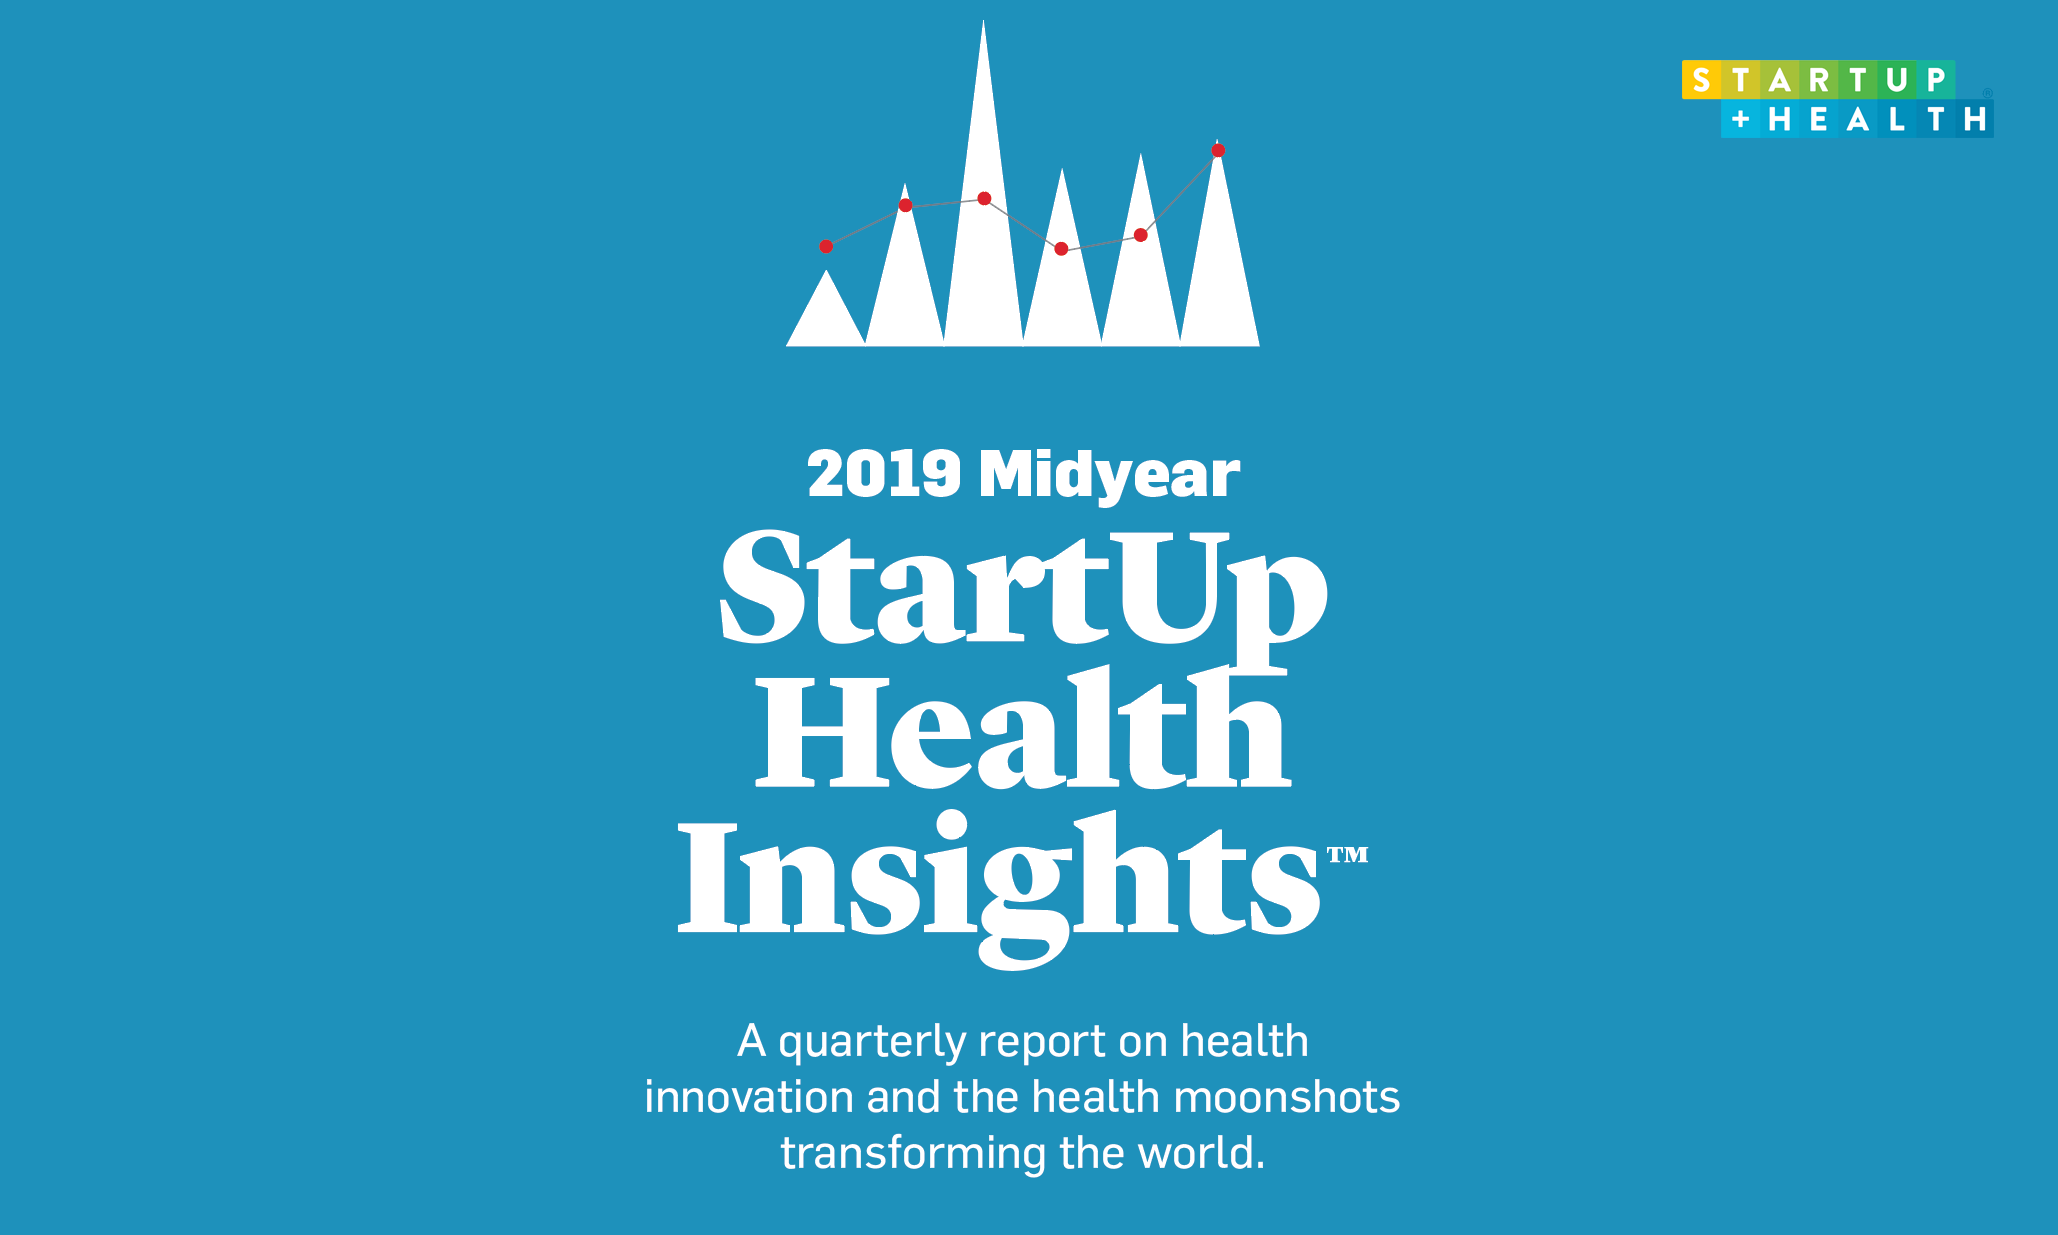 The Year of the Patient – StartUp Health's 2019 Midyear Insights Report on the Health Innovation Market - Jul. 3, 2019